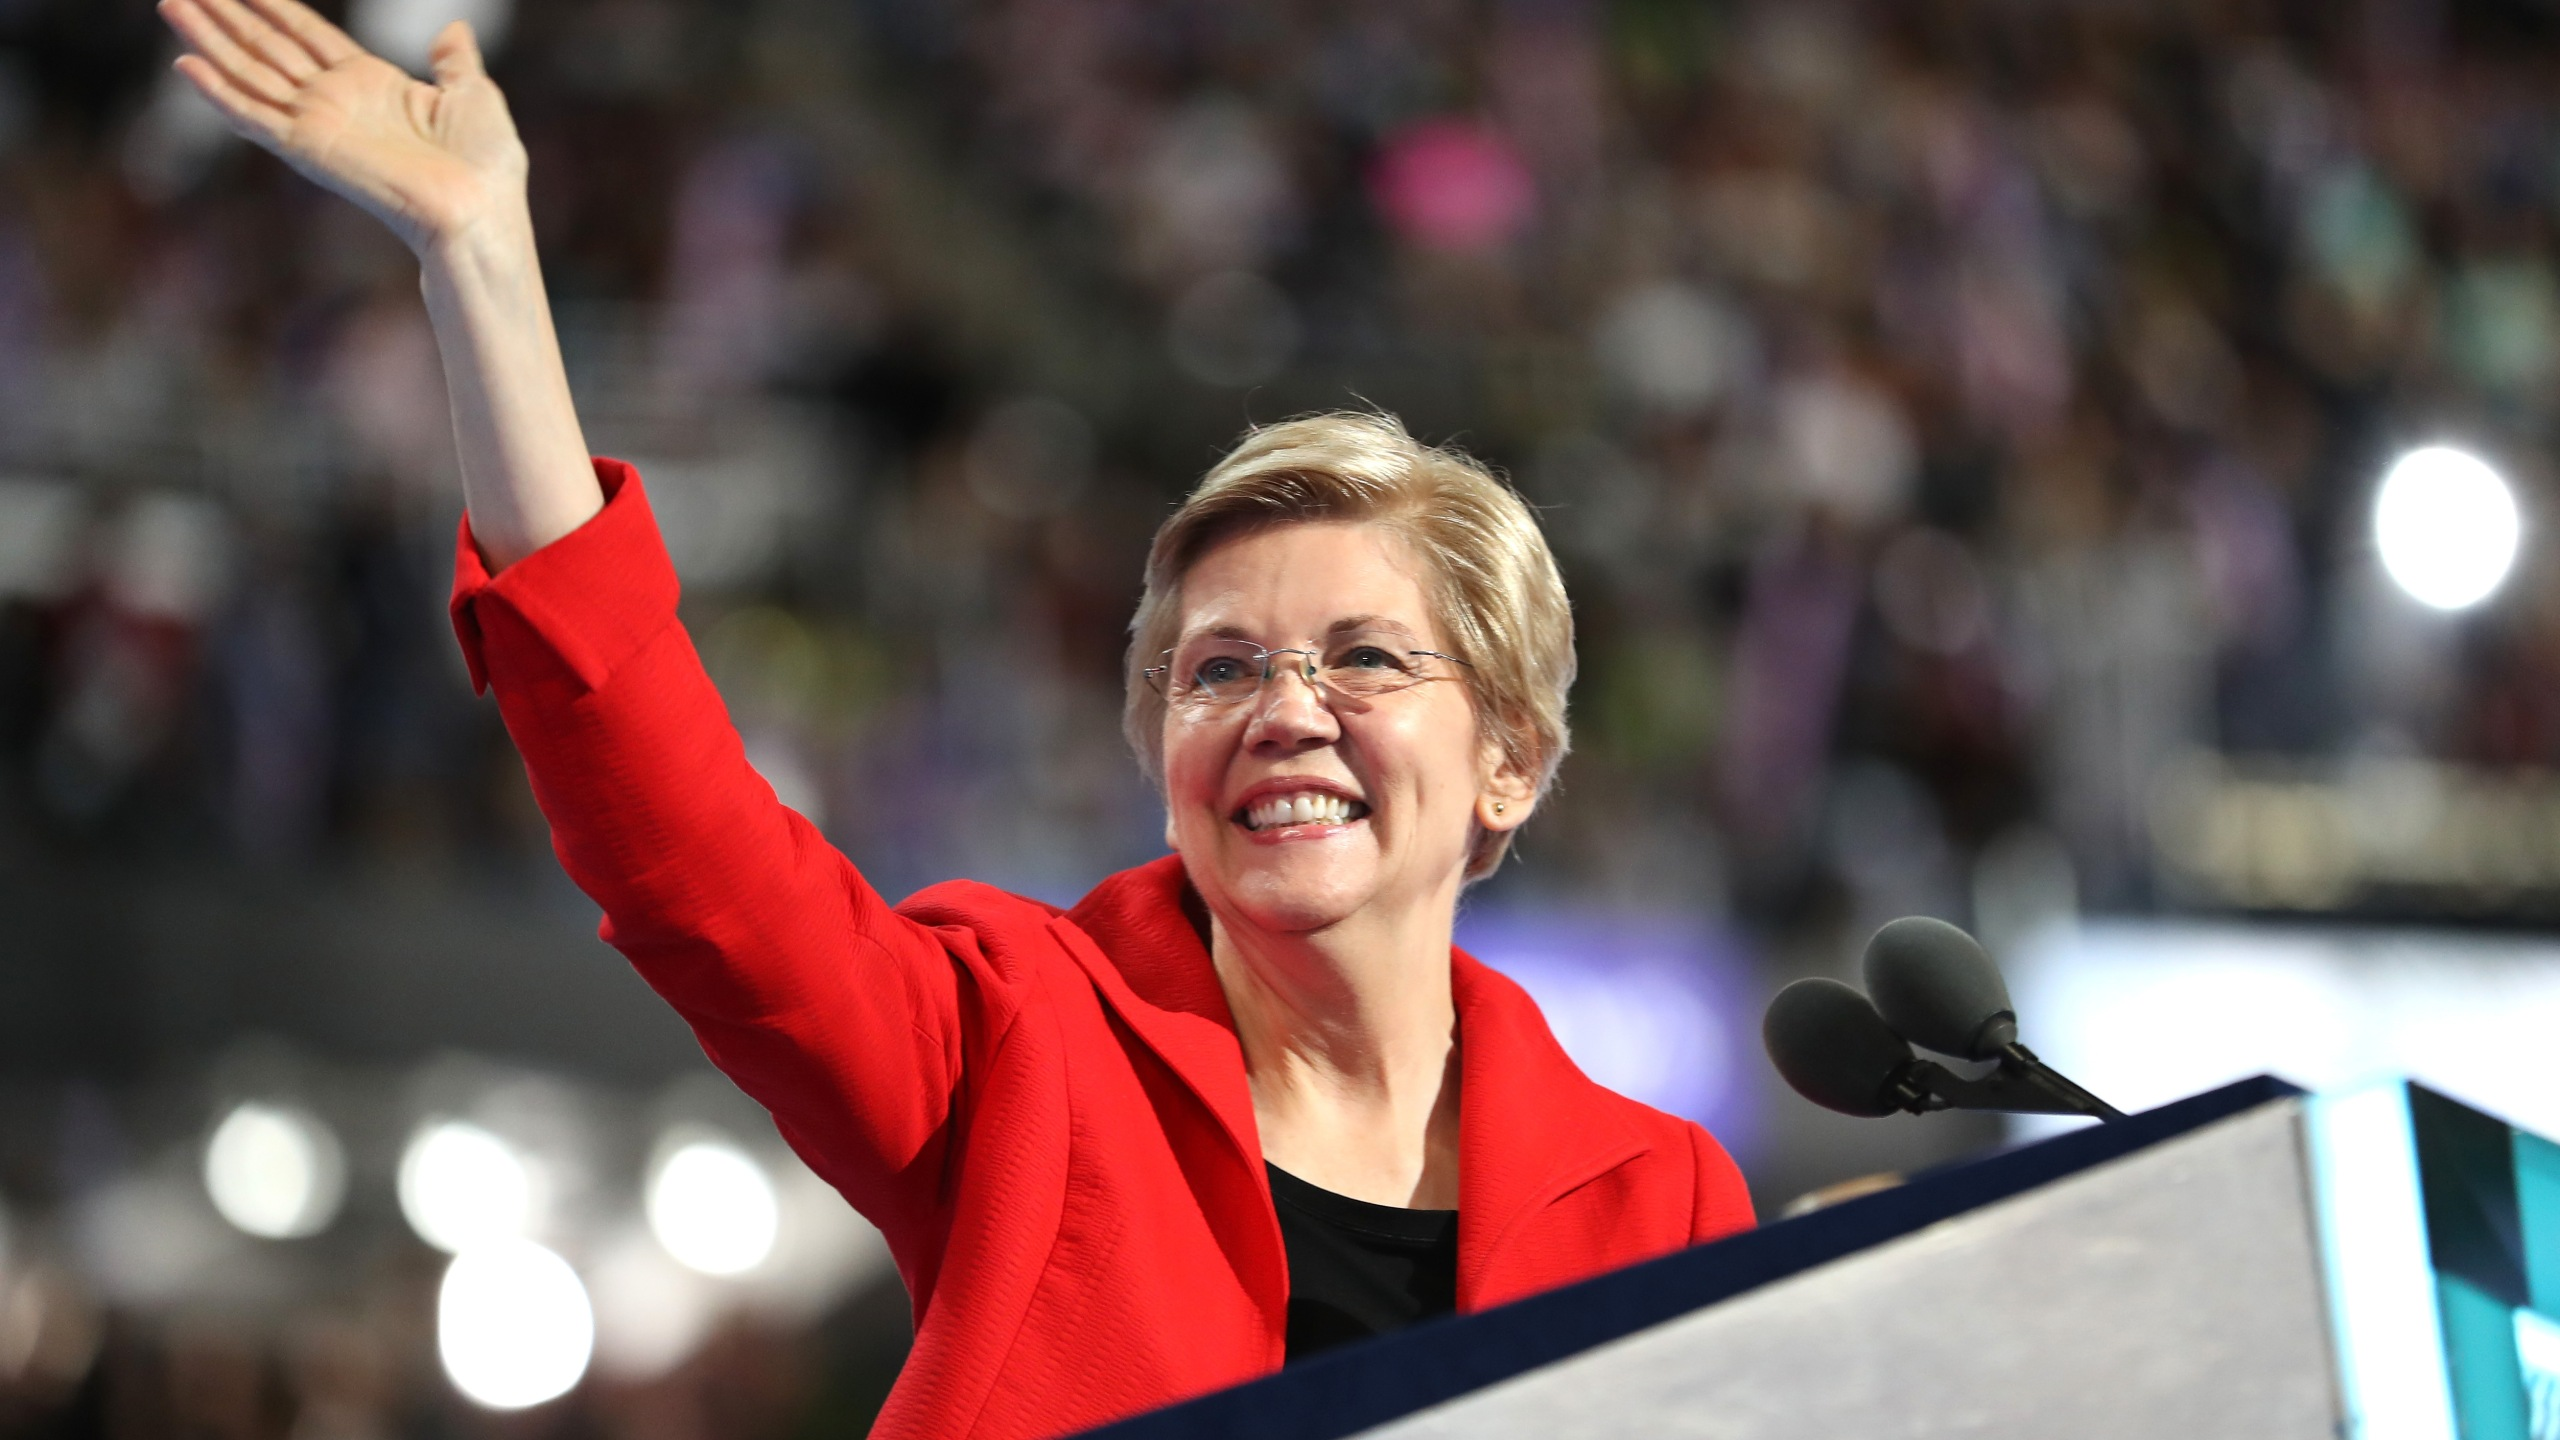 Sen. Elizabeth Warren acknowledges the crowd as she walks on stage to deliver remarks on the first day of the Democratic National Convention at the Wells Fargo Center, July 25, 2016 in Philadelphia, Pennsylvania. (Credit: Joe Raedle/Getty Images)